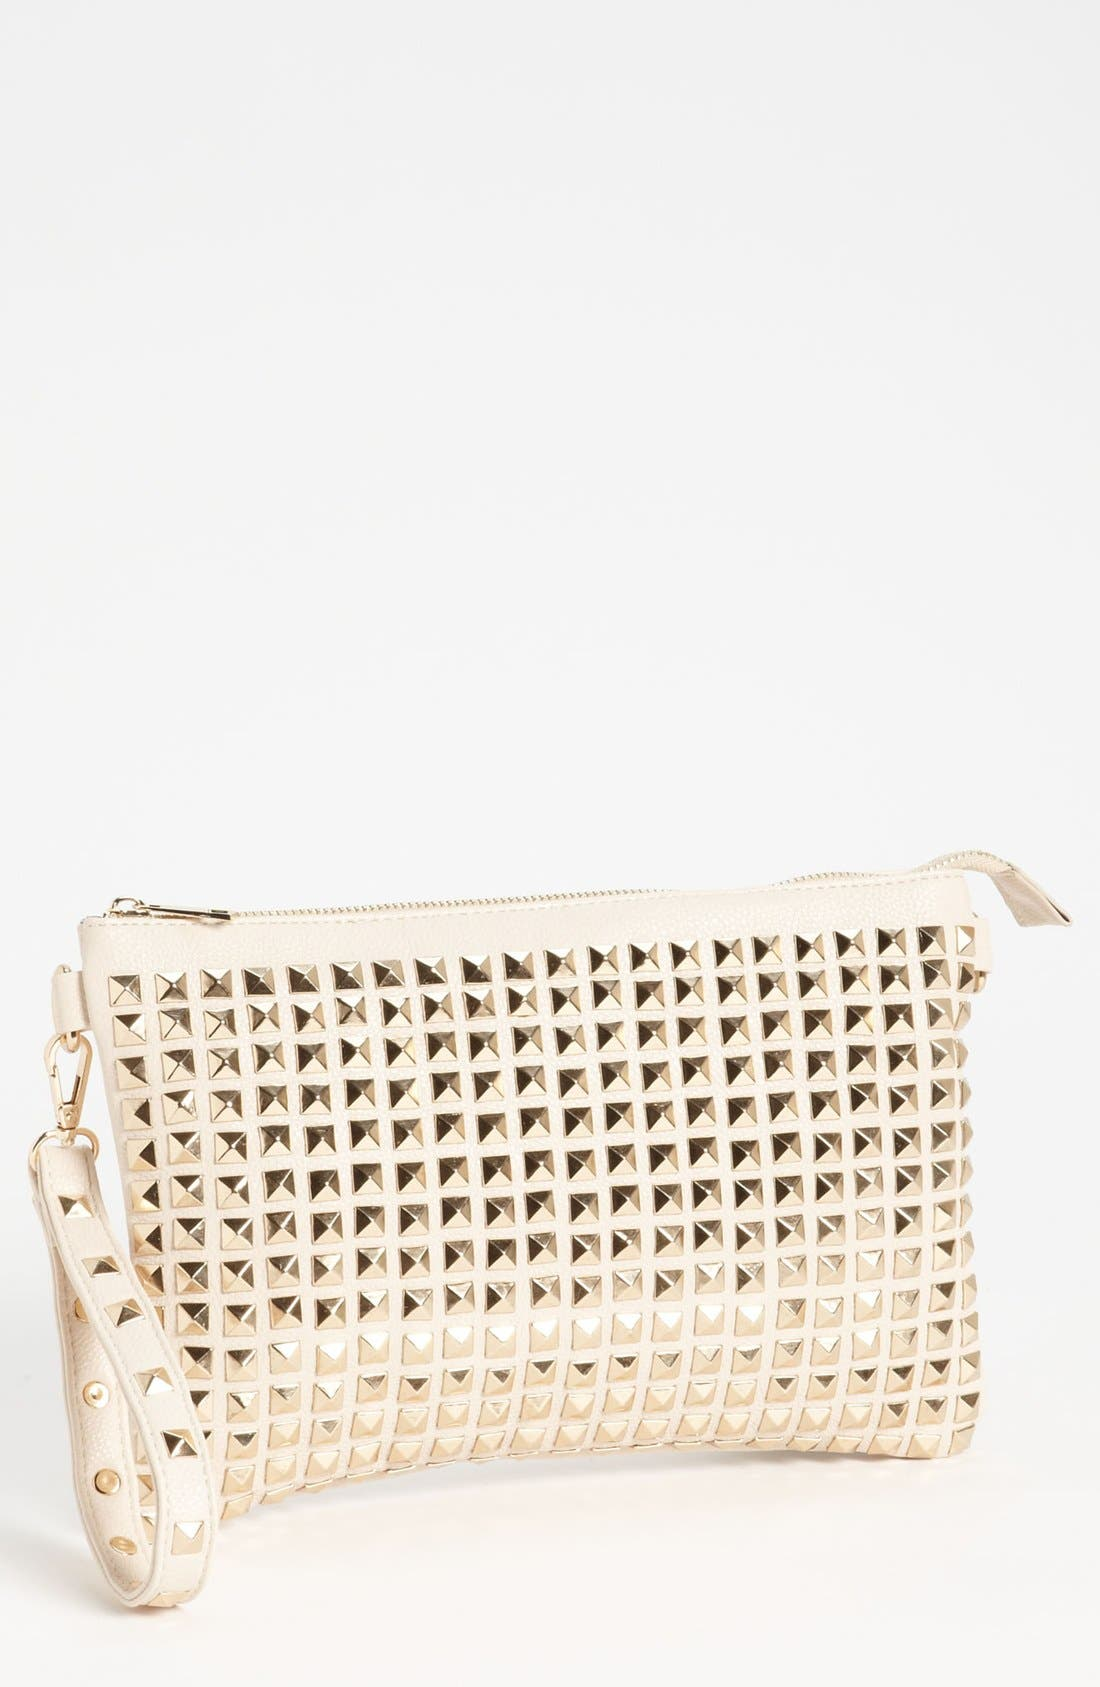 Alternate Image 1 Selected - De L'avion Studded Crossbody Clutch